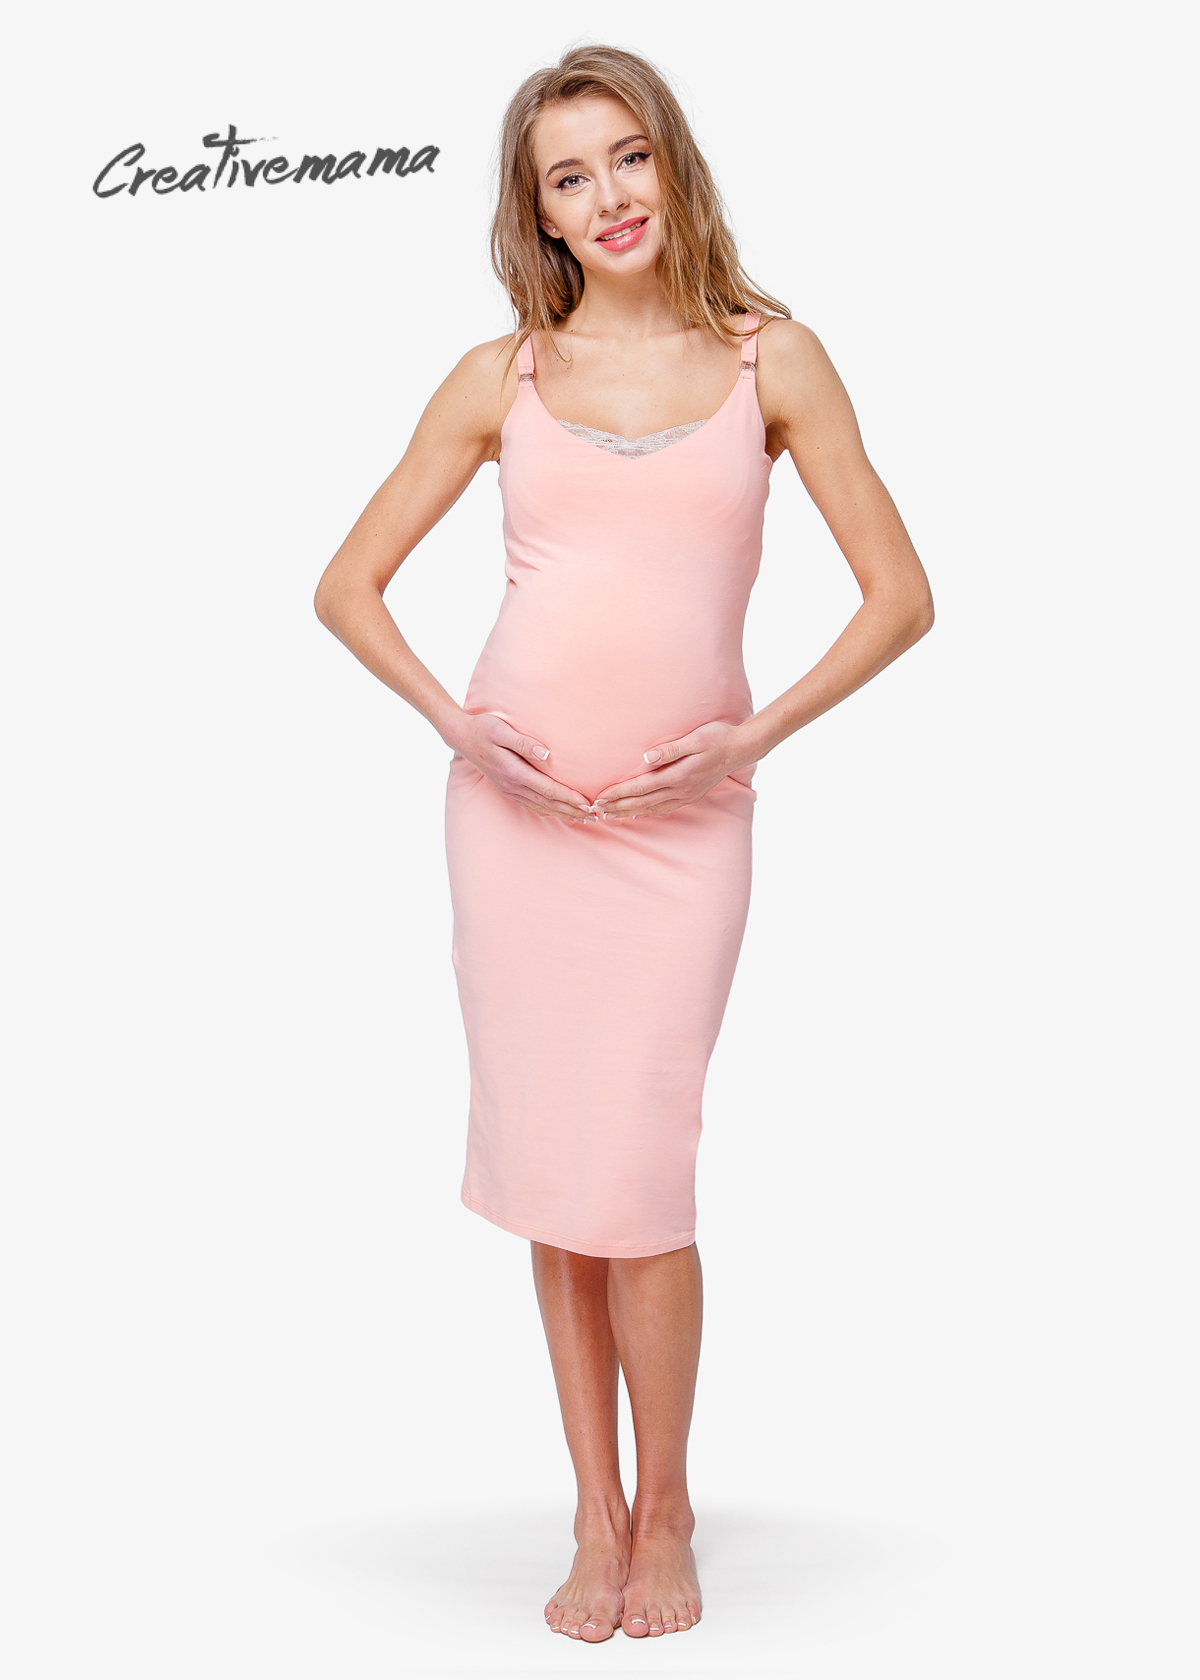 ПЛАТЬЕ ТОП BODYCON PEACH (ХЛОПОК) фото 3